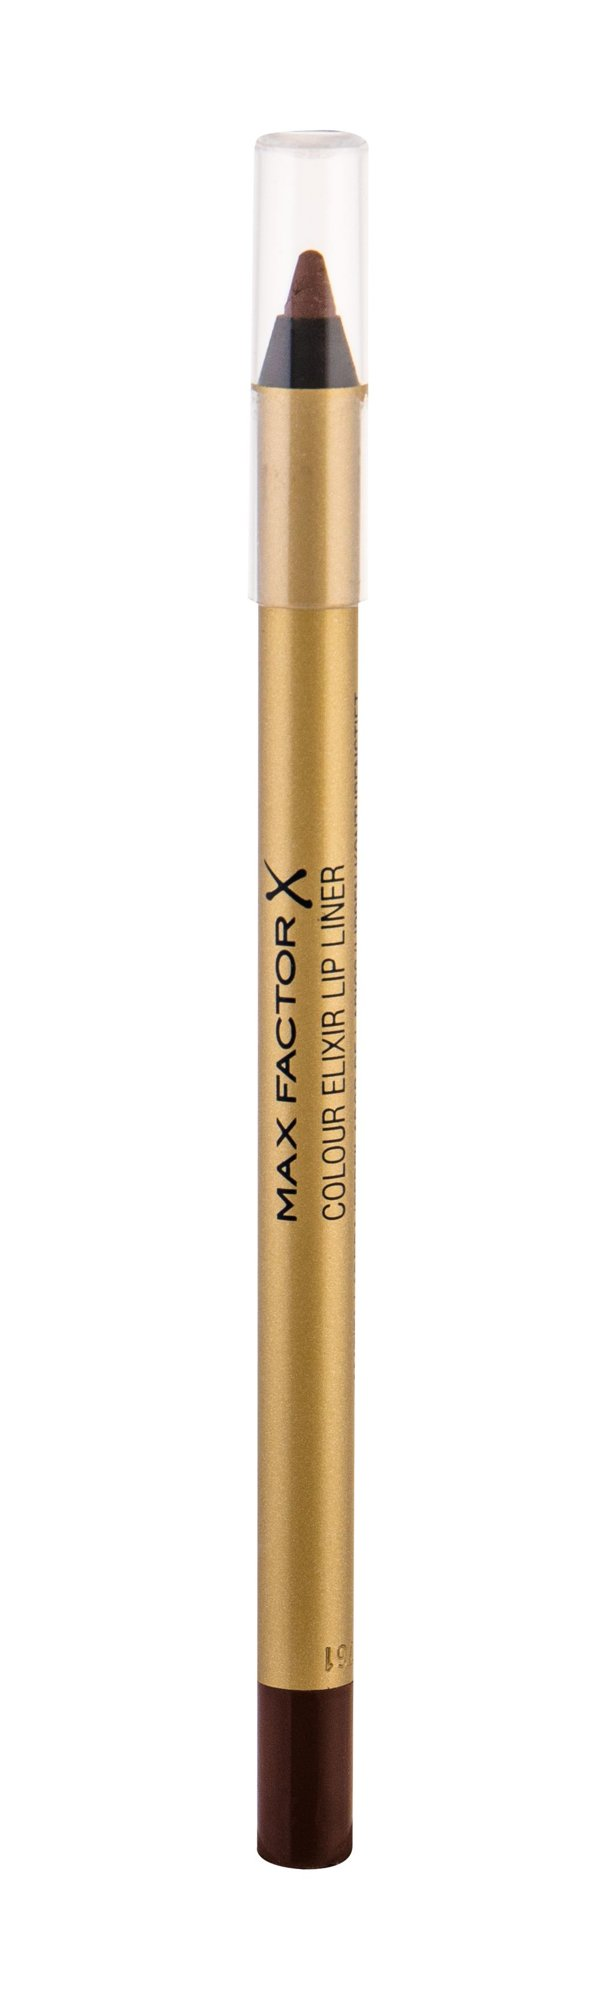 Max Factor Colour Elixir Lip Pencil 2ml 22 Brown Dusk